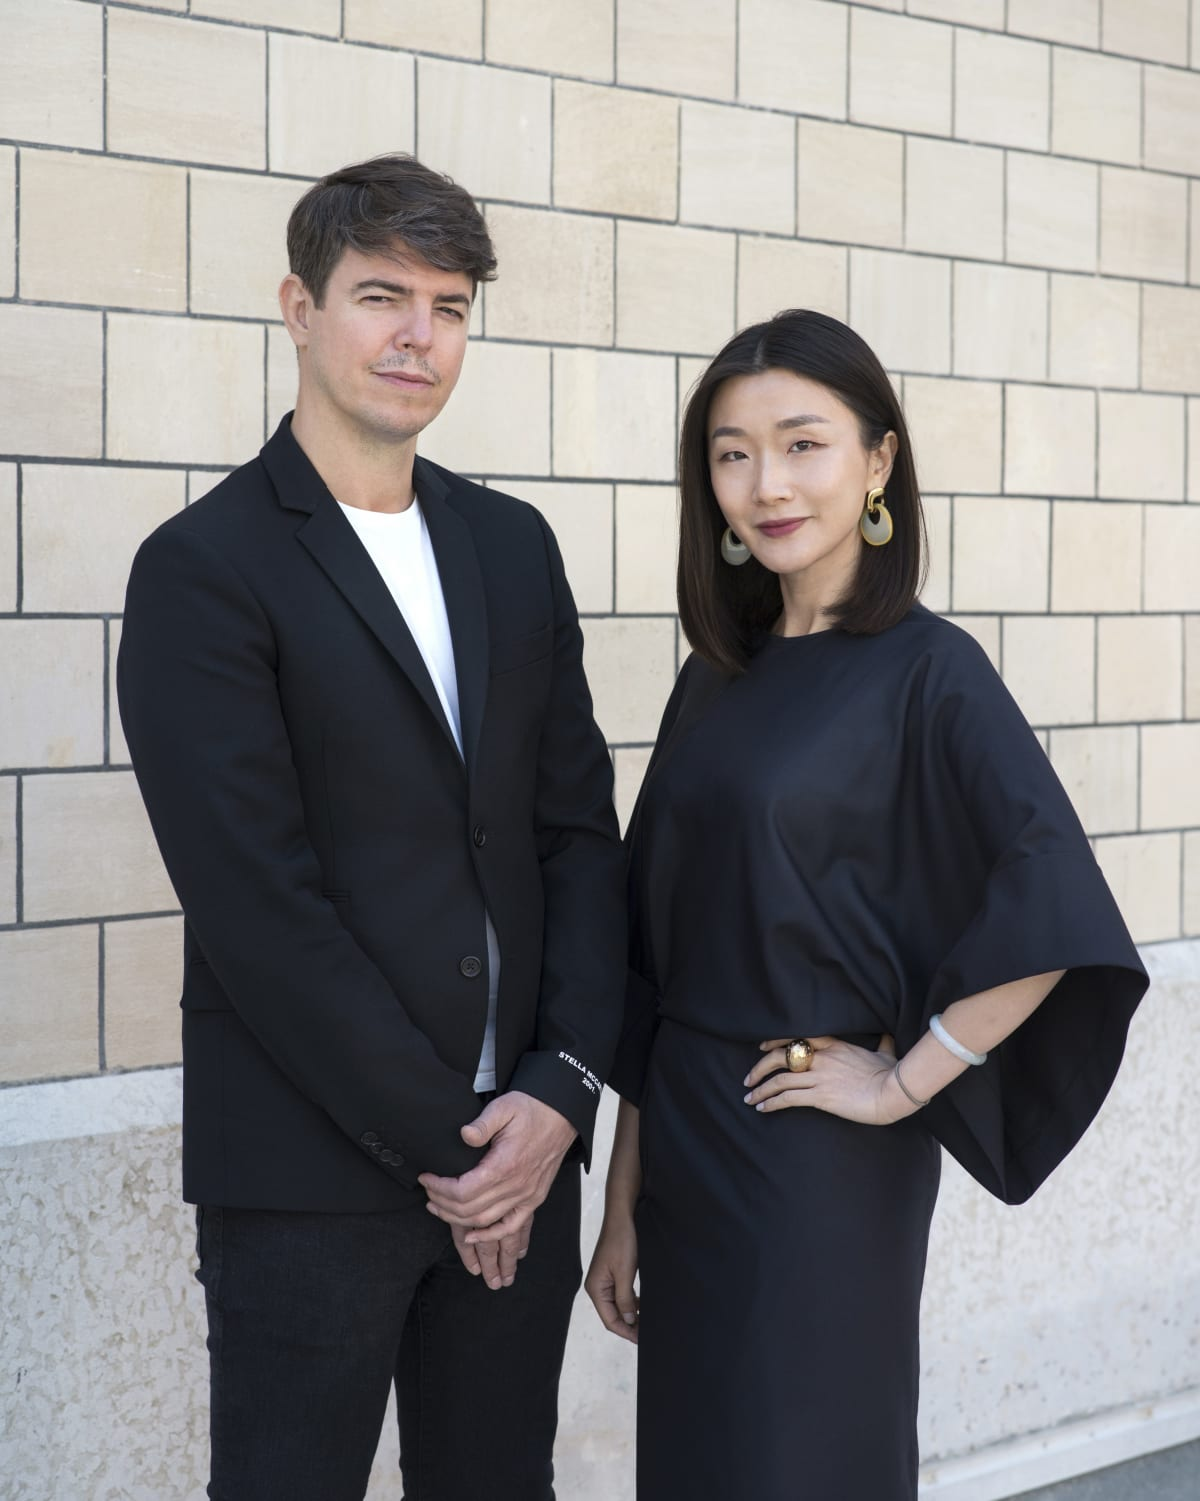 Galerie Marguo founders Jean-Mathieu Martini and Vanessa Guo. Courtesy Galerie Marguo